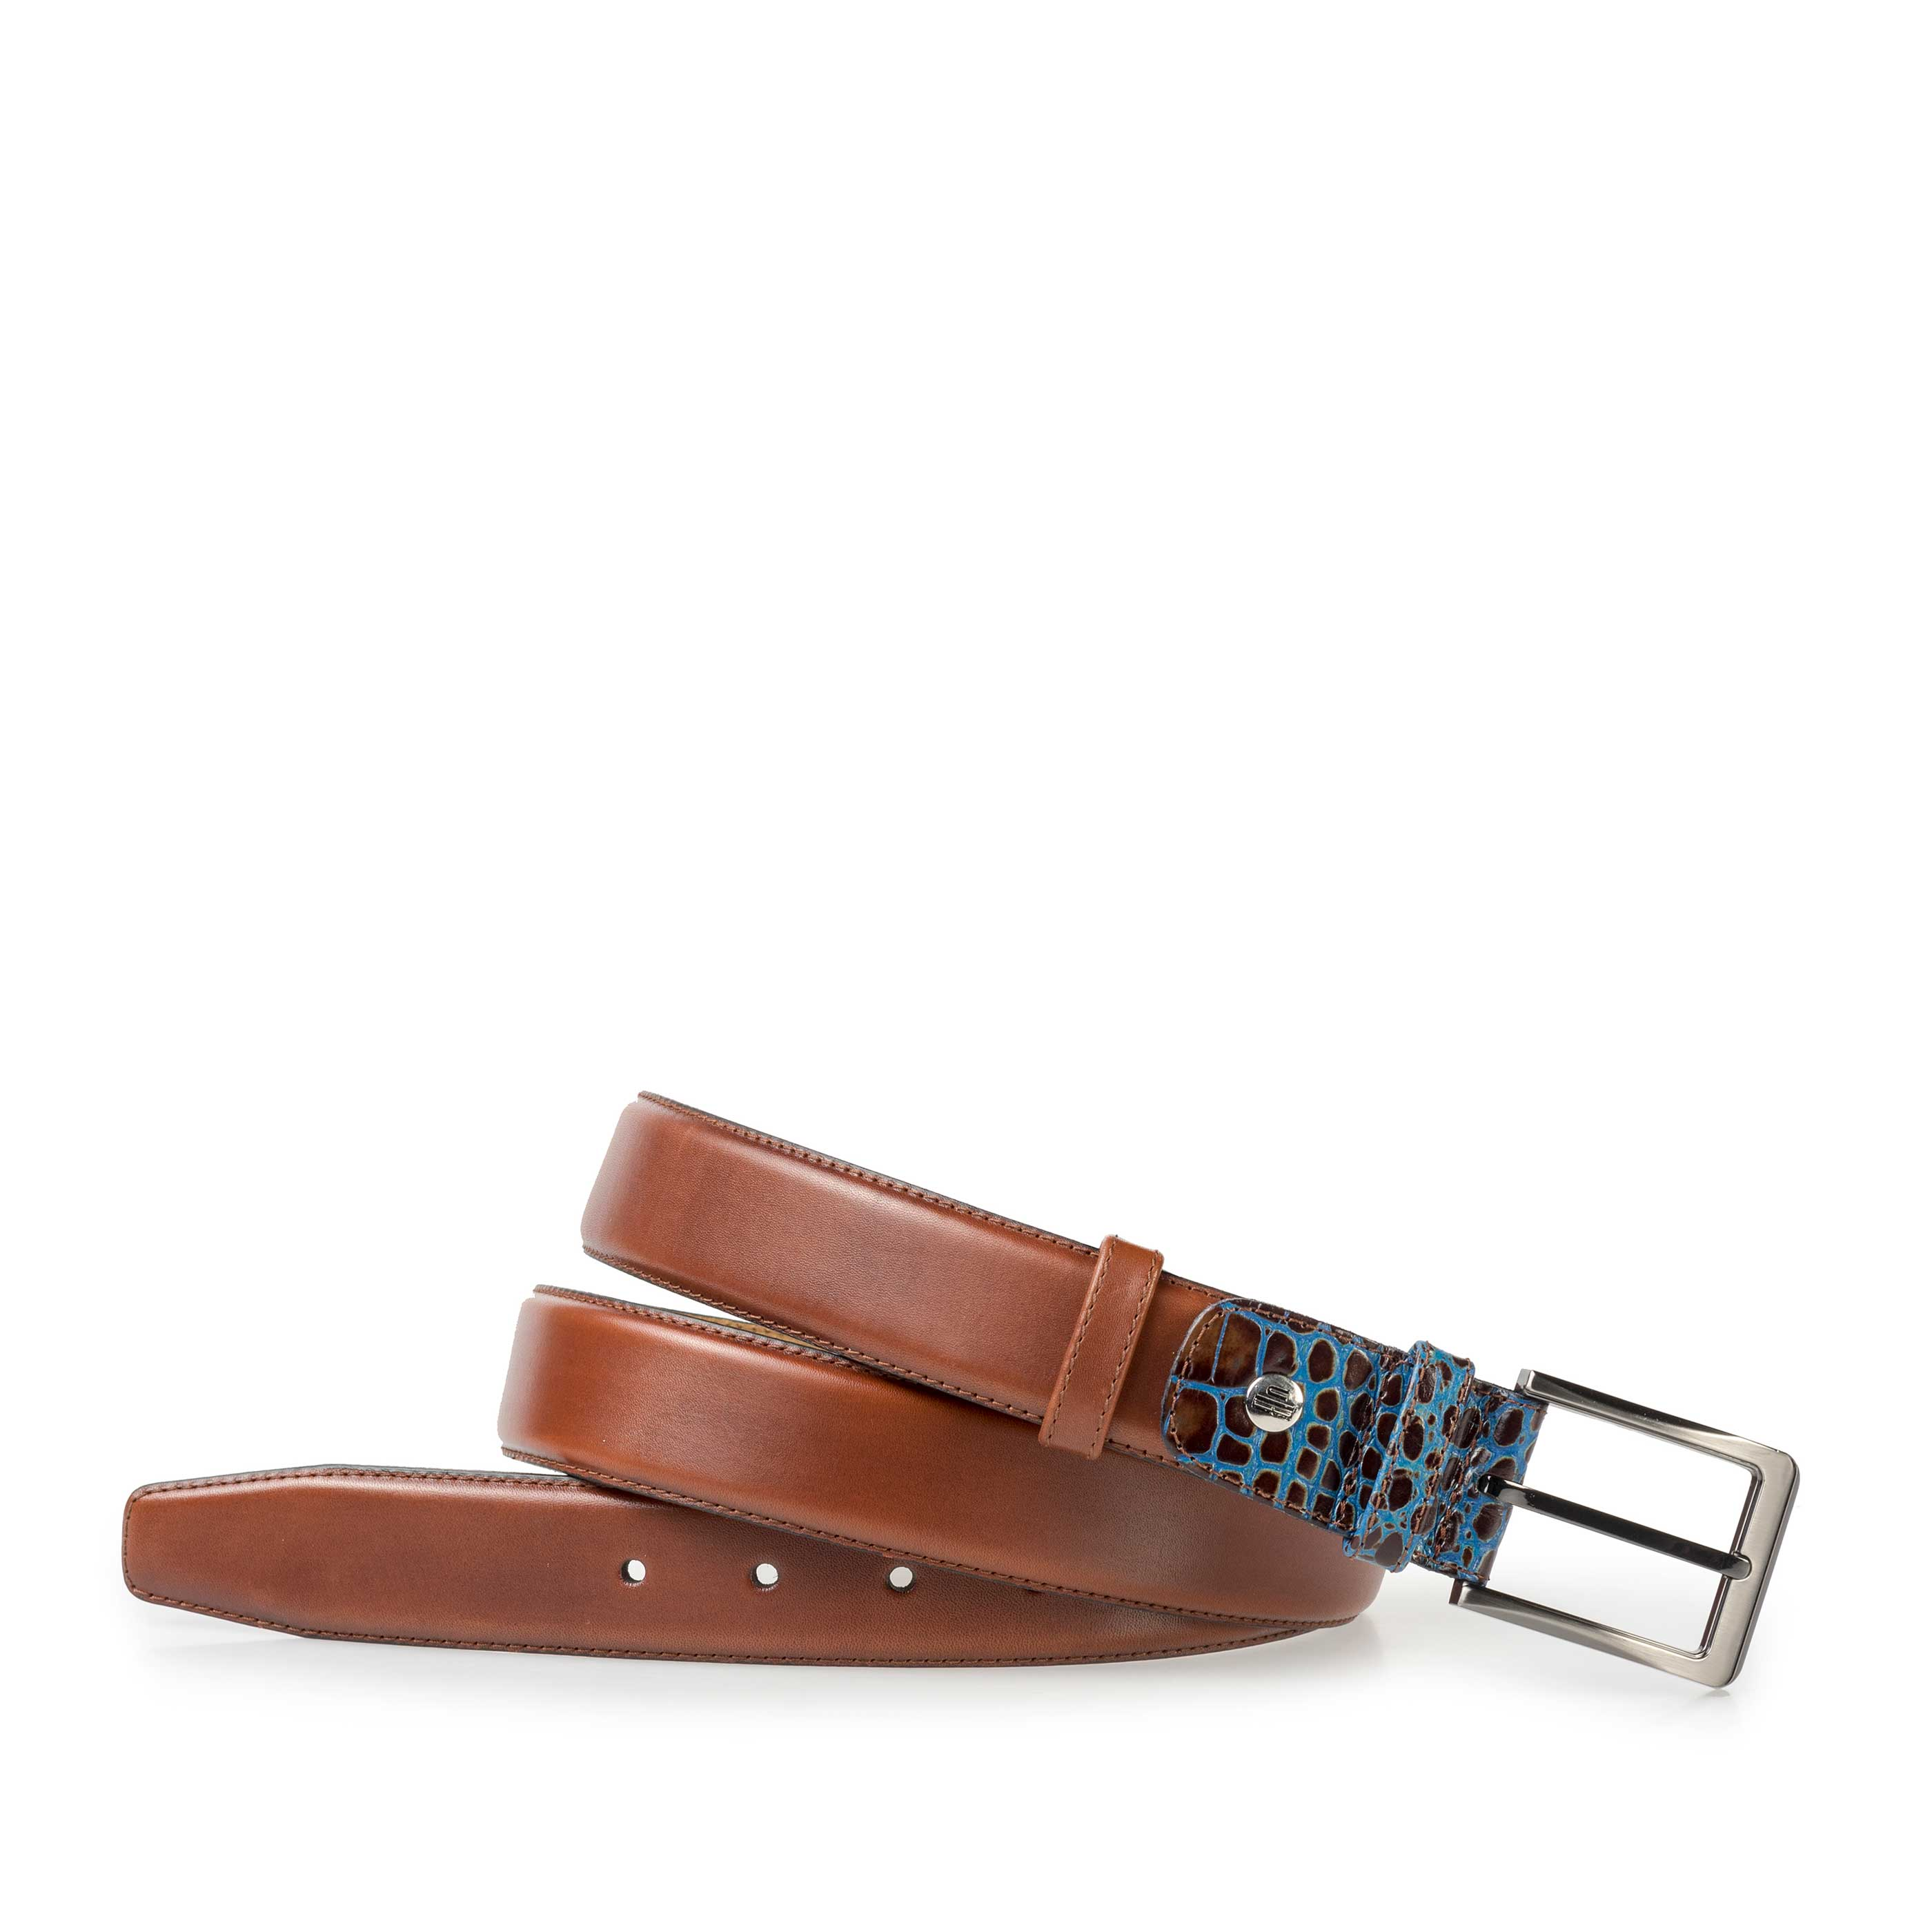 75055/02 - Medium brown leather belt